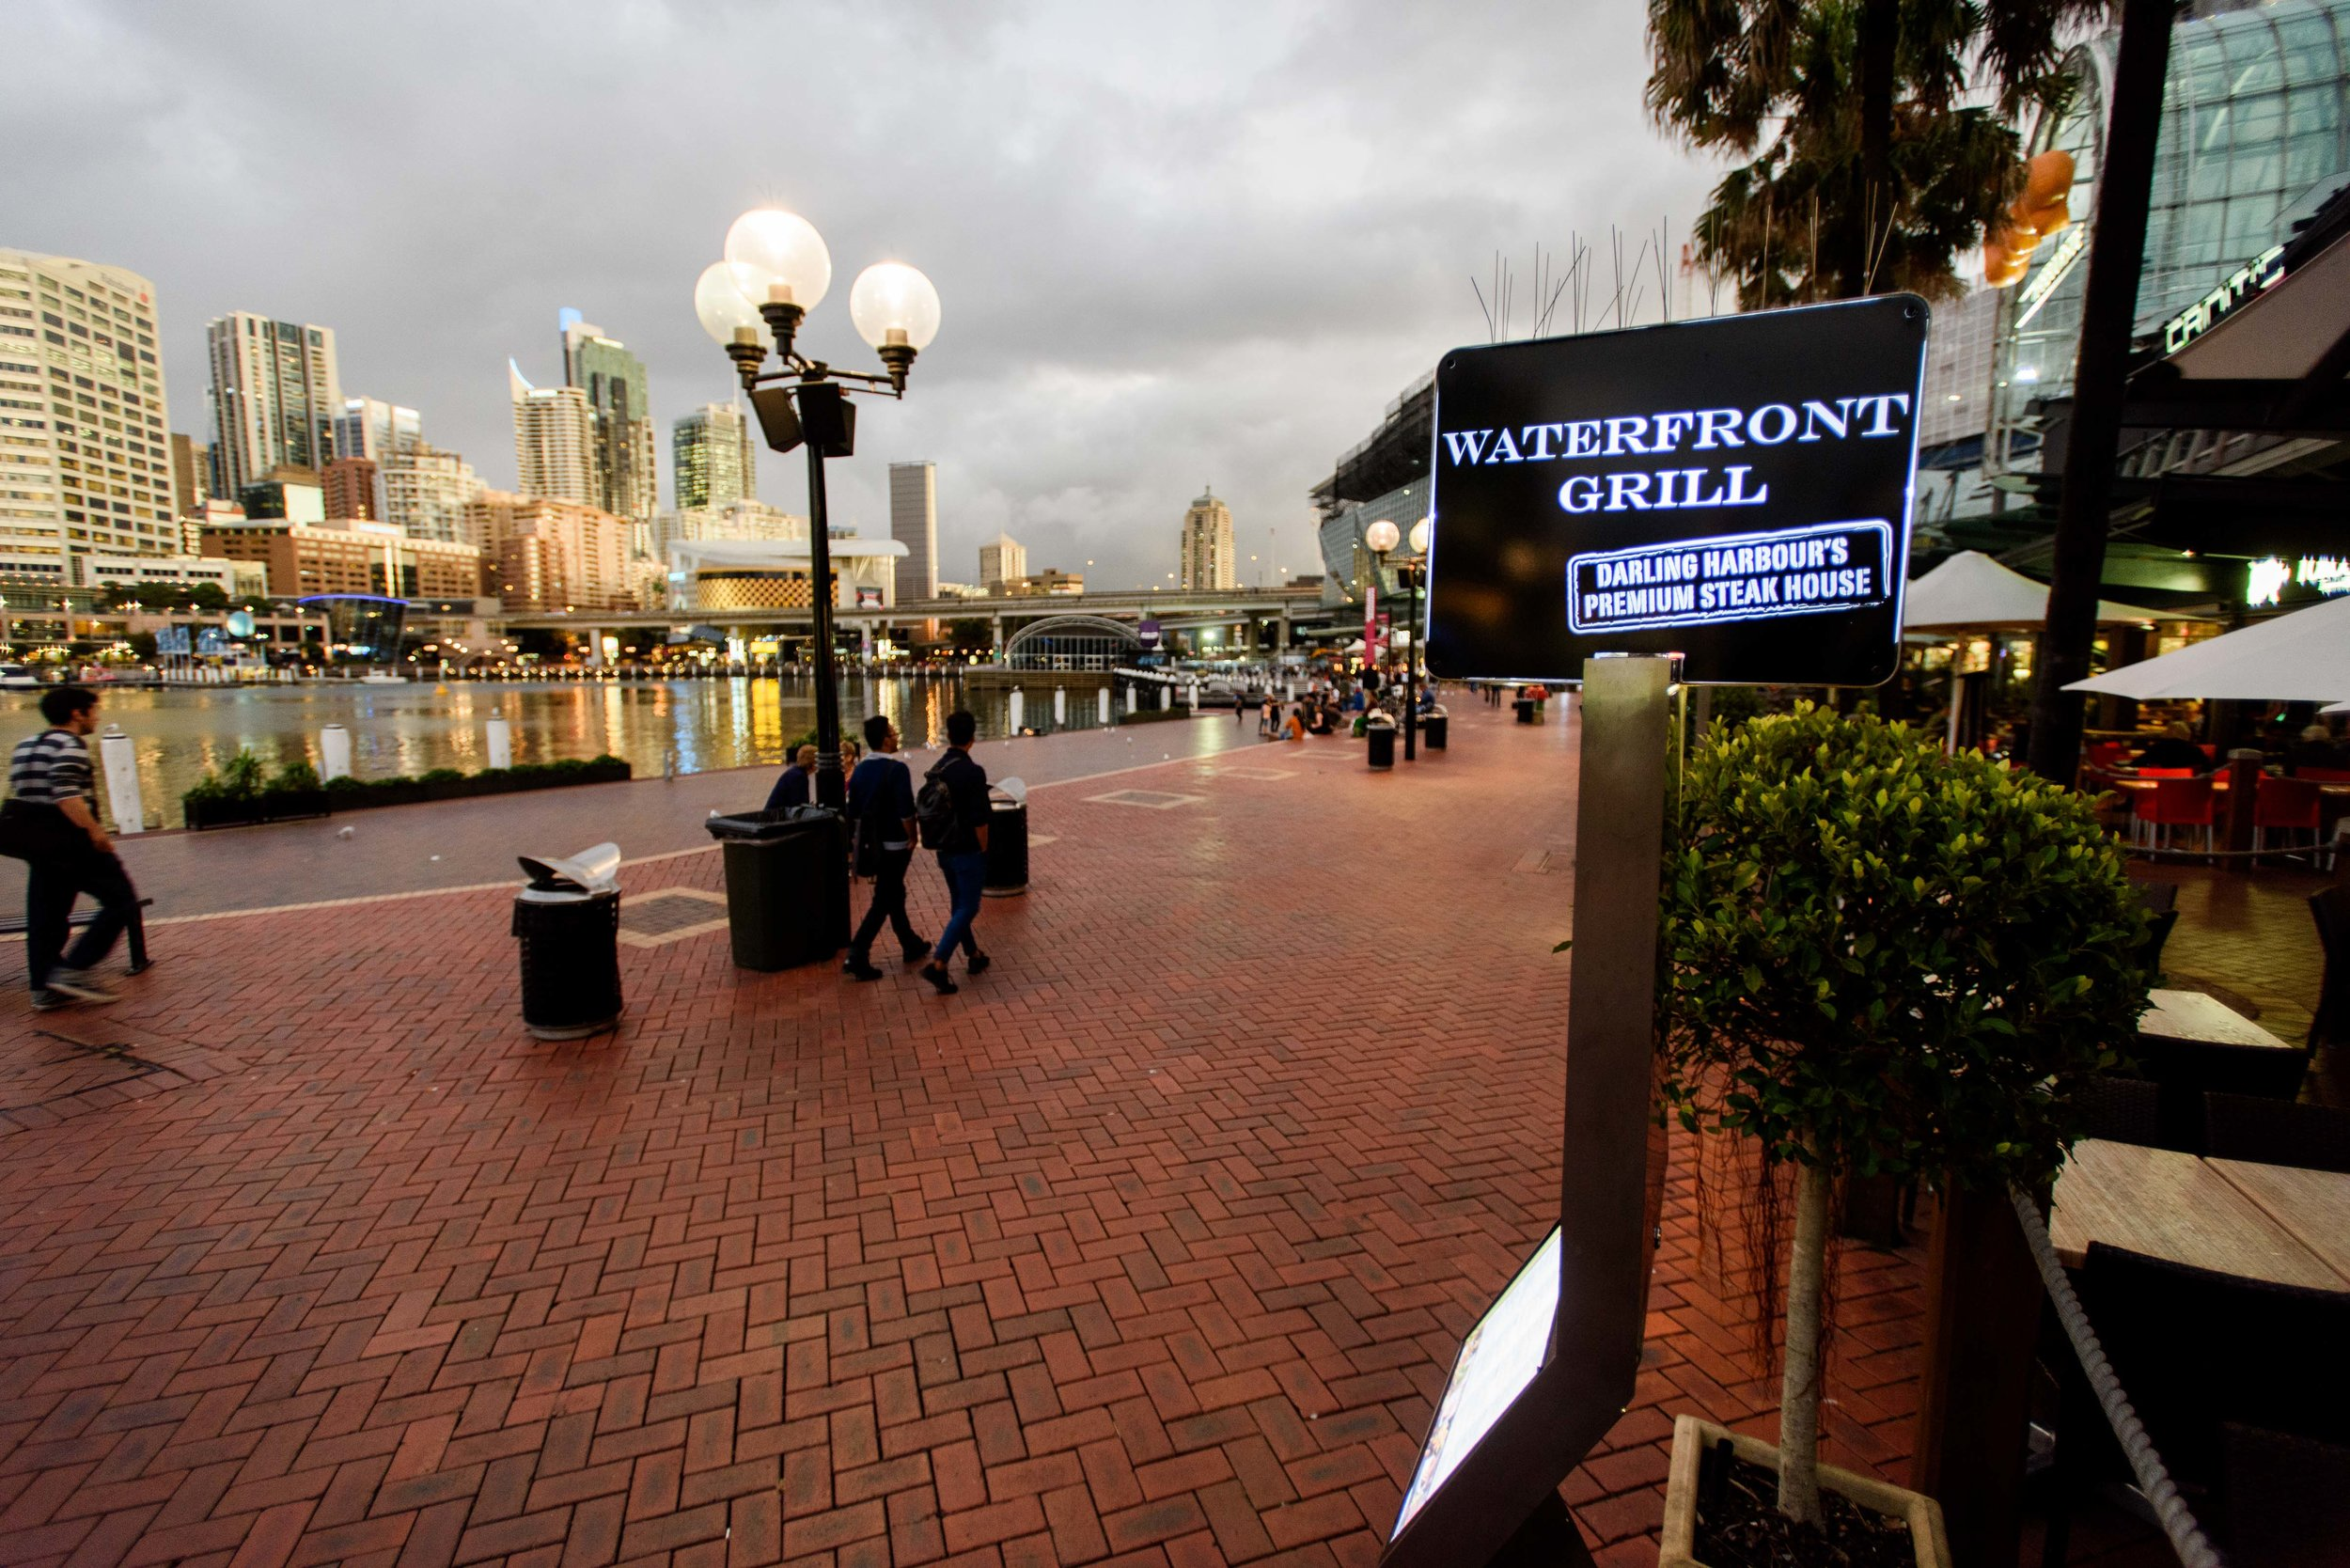 Waterfront-Grill-Gallery-14.jpg